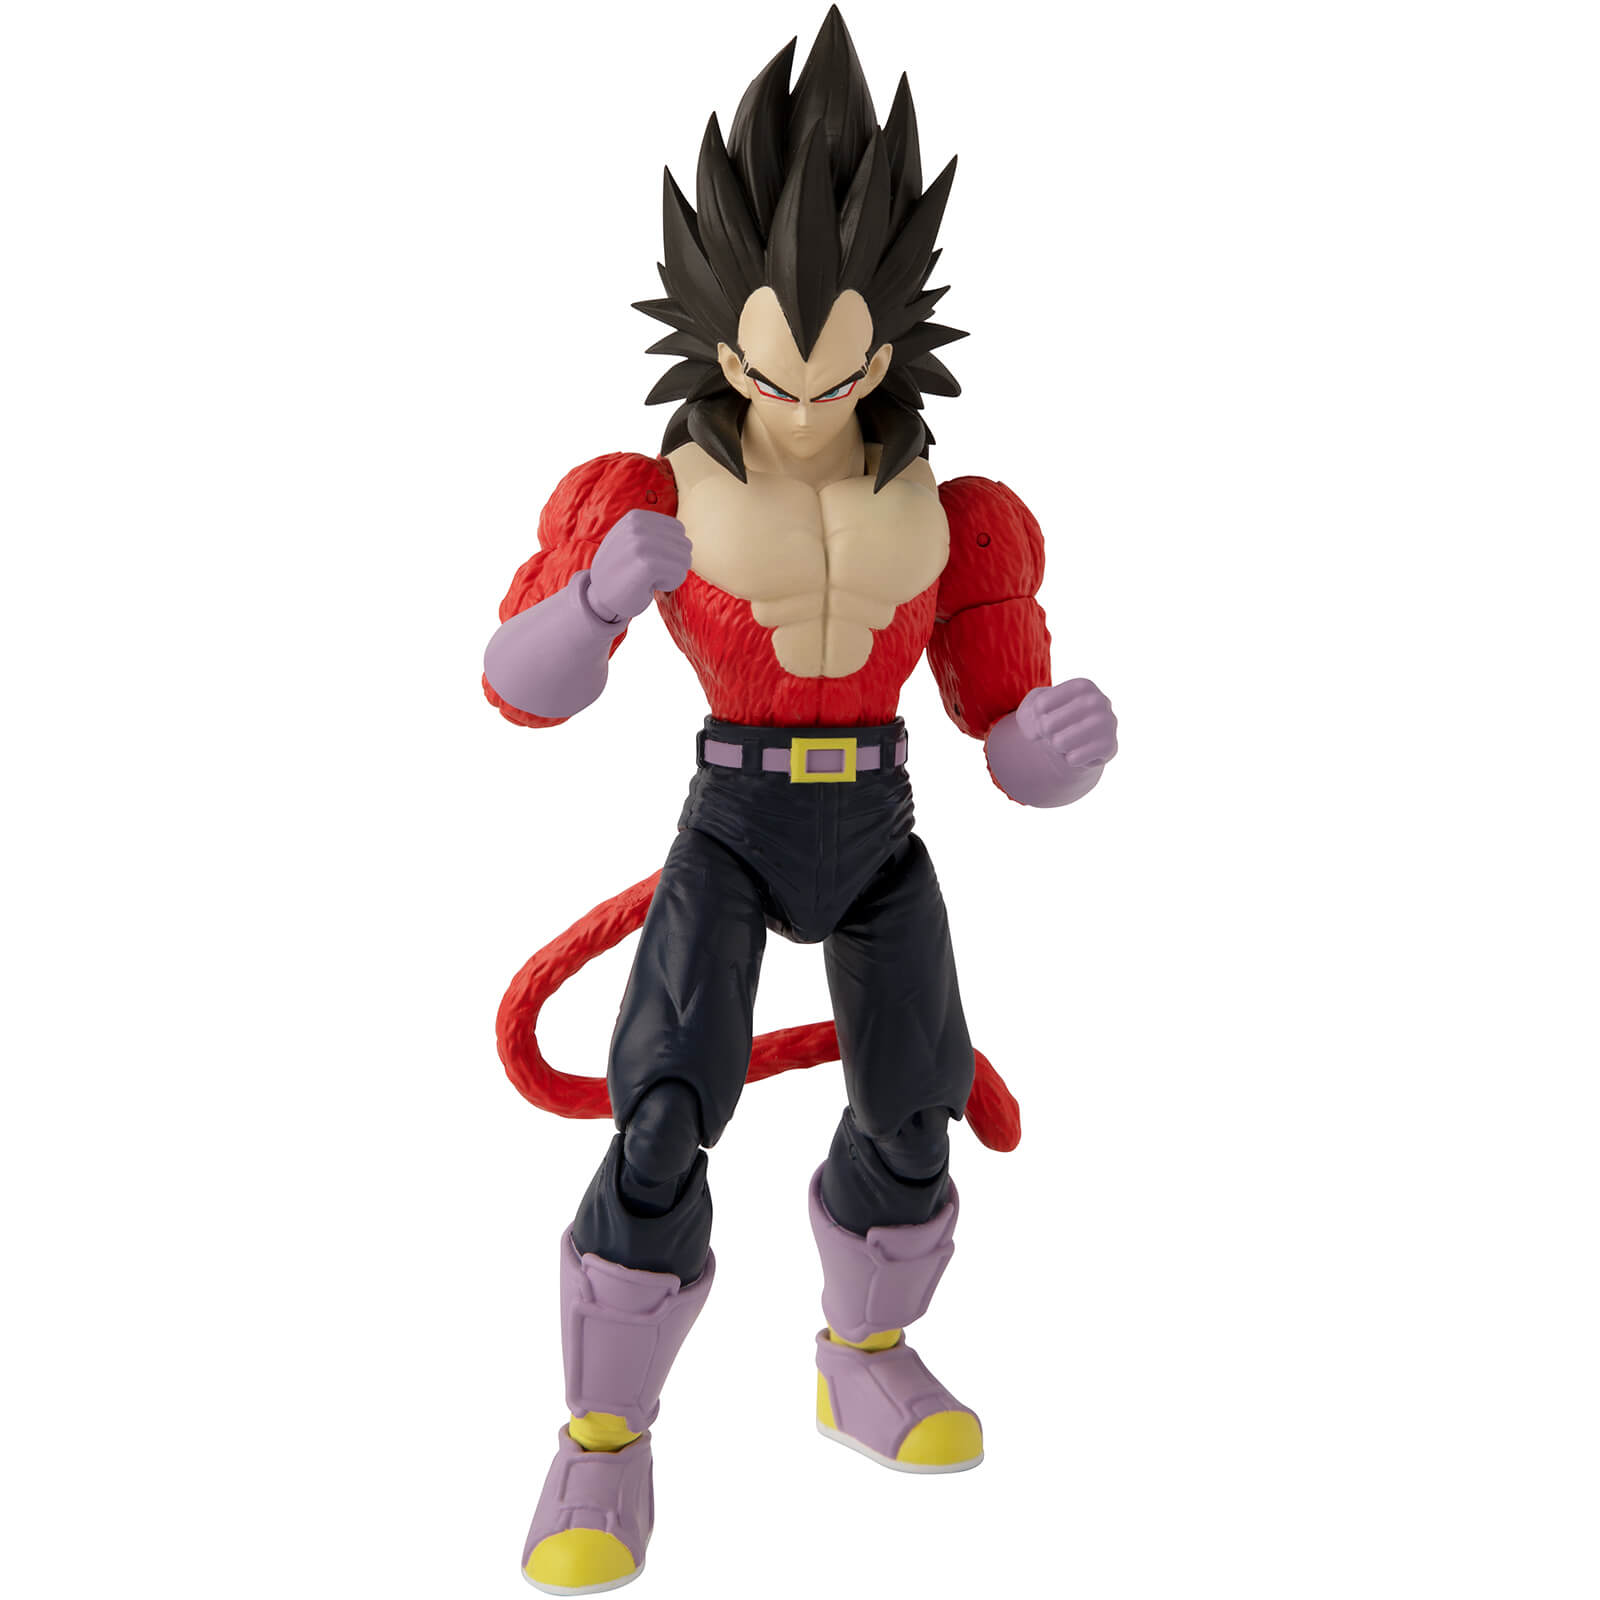 Image of Bandai Dragon Stars DBZ Super Saiyan 4 Vegeta Action Figure